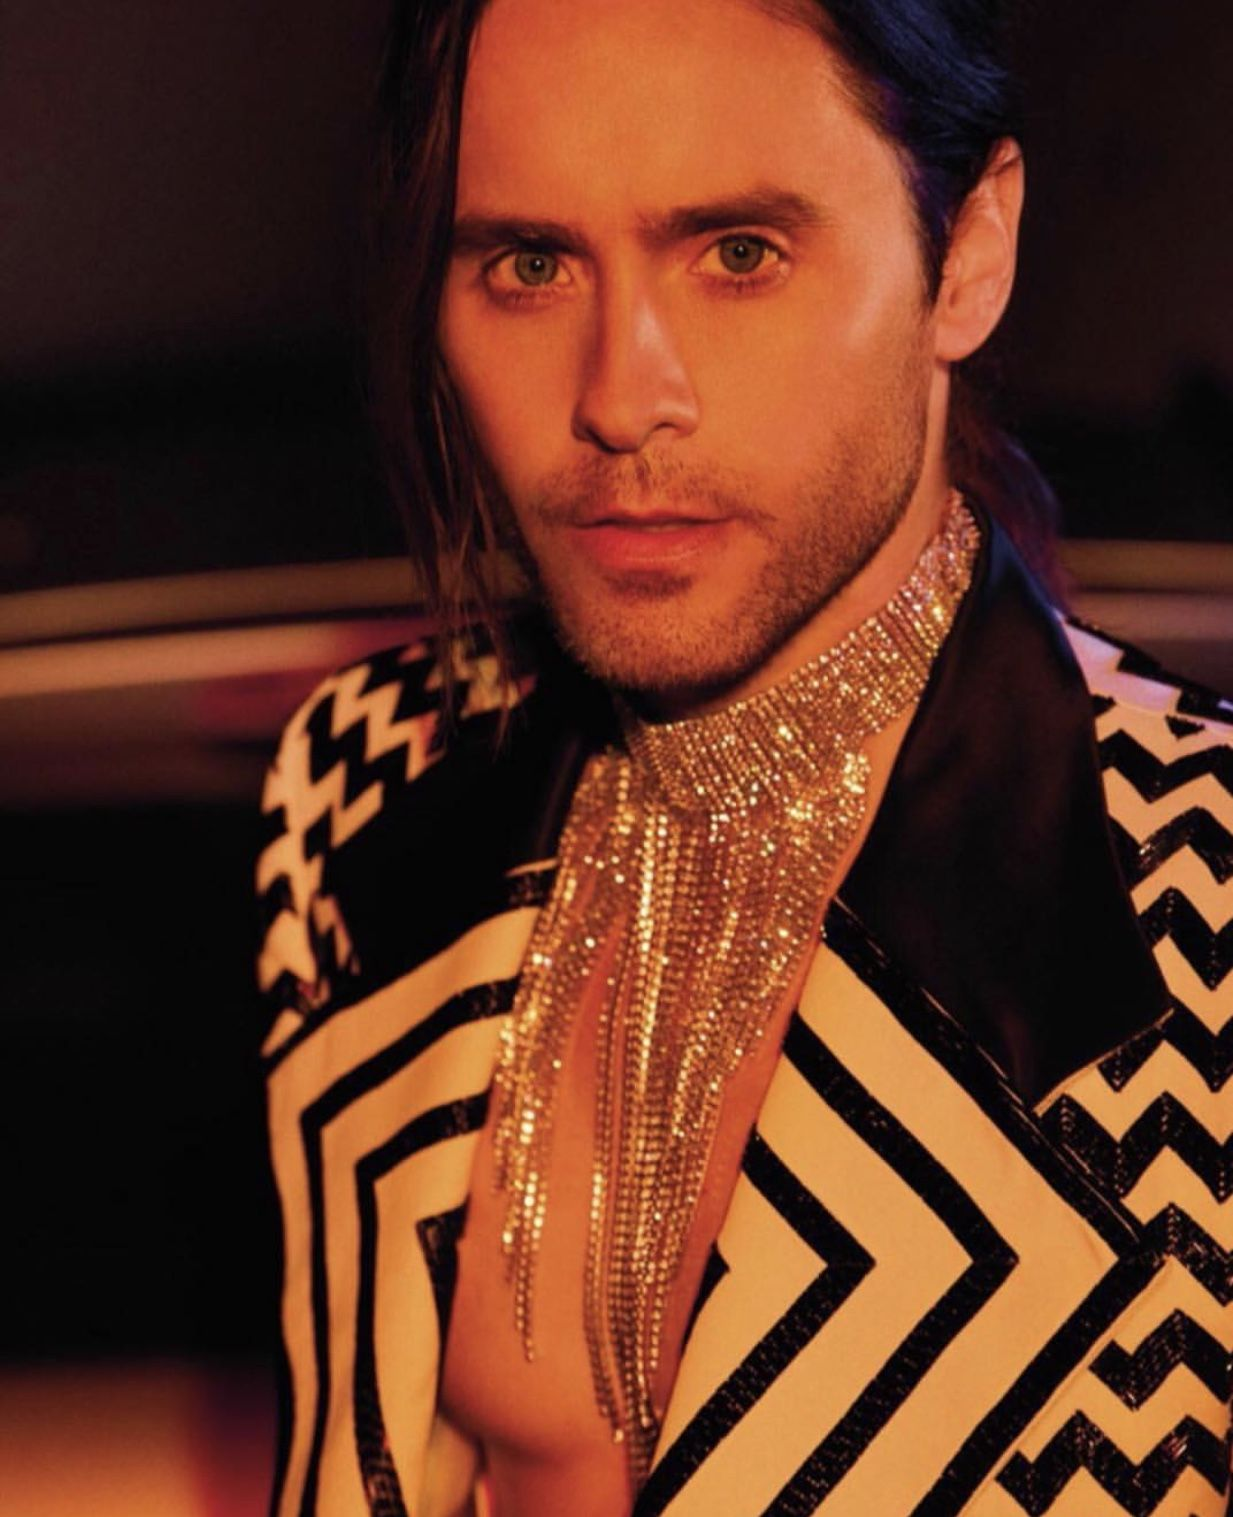 Pin By Lex On Jared Jared Leto Jared Actors